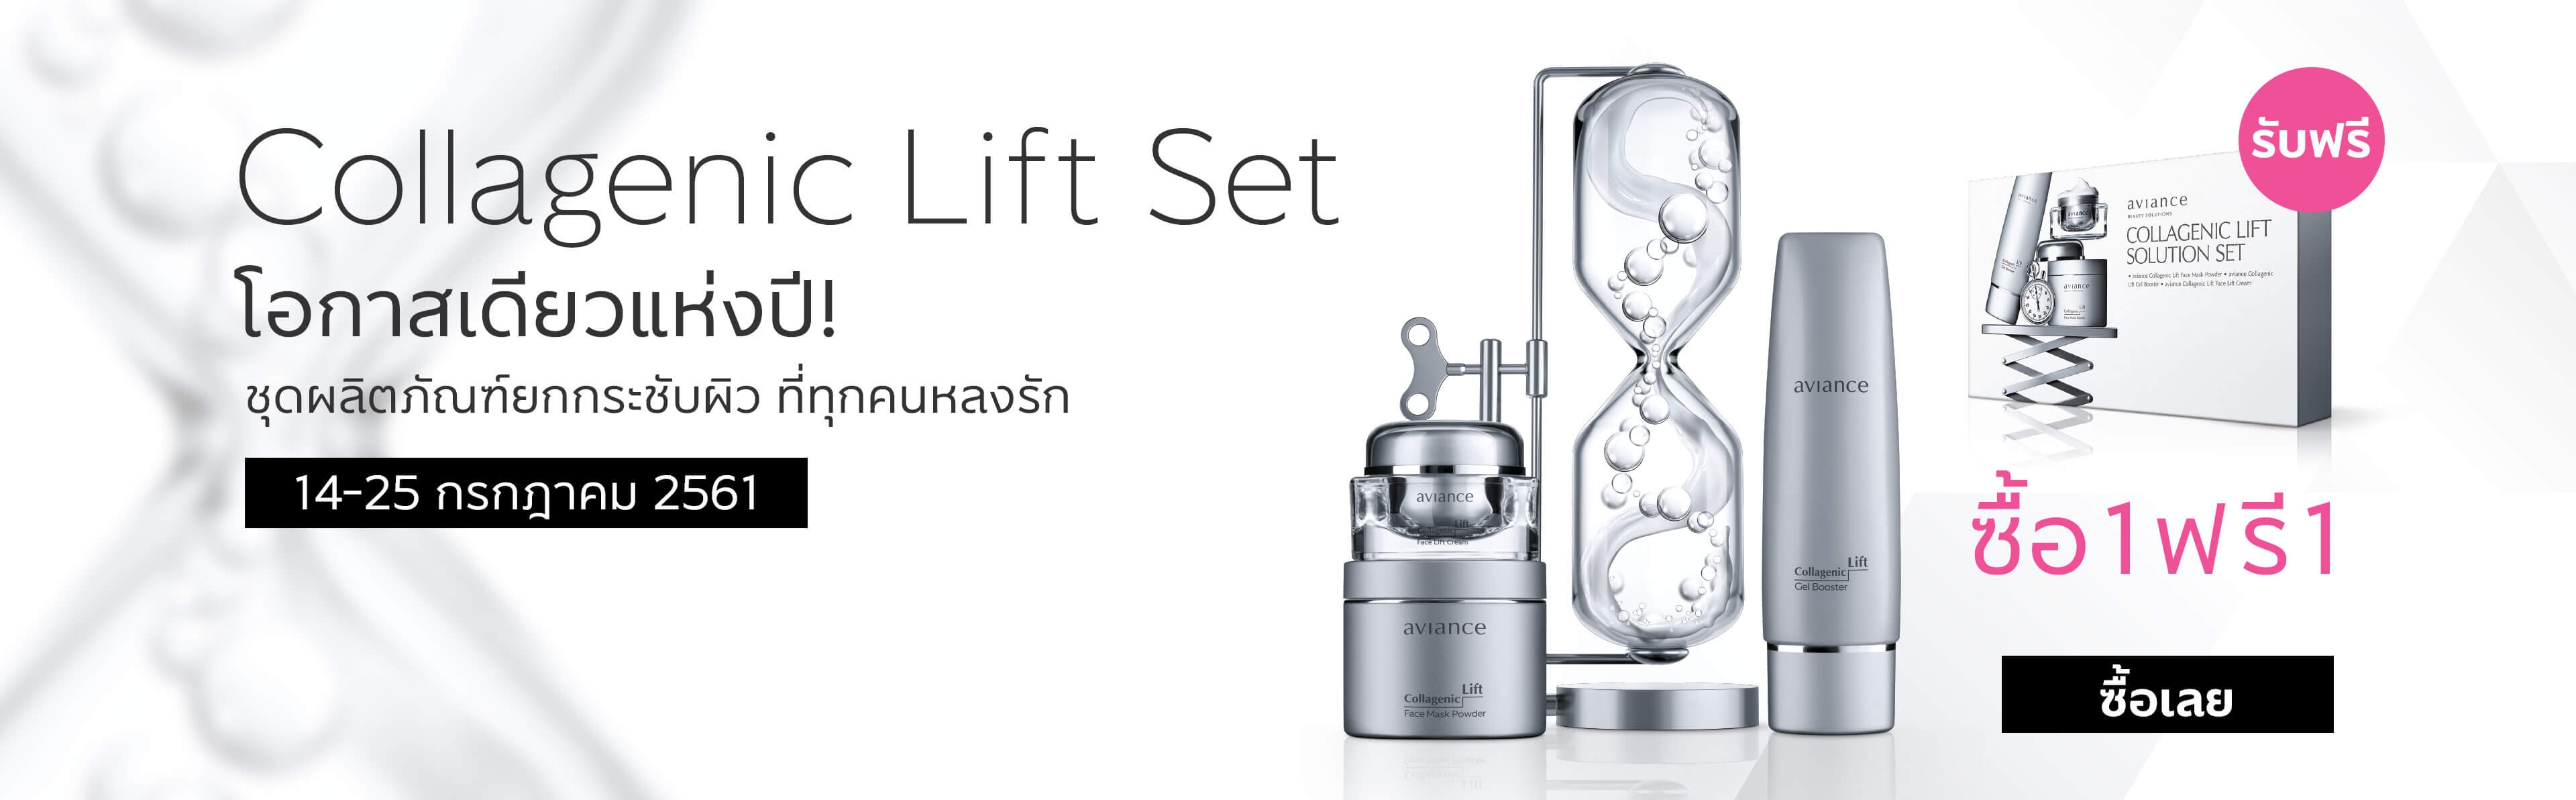 Buy one Get one Collagenic Lift Set